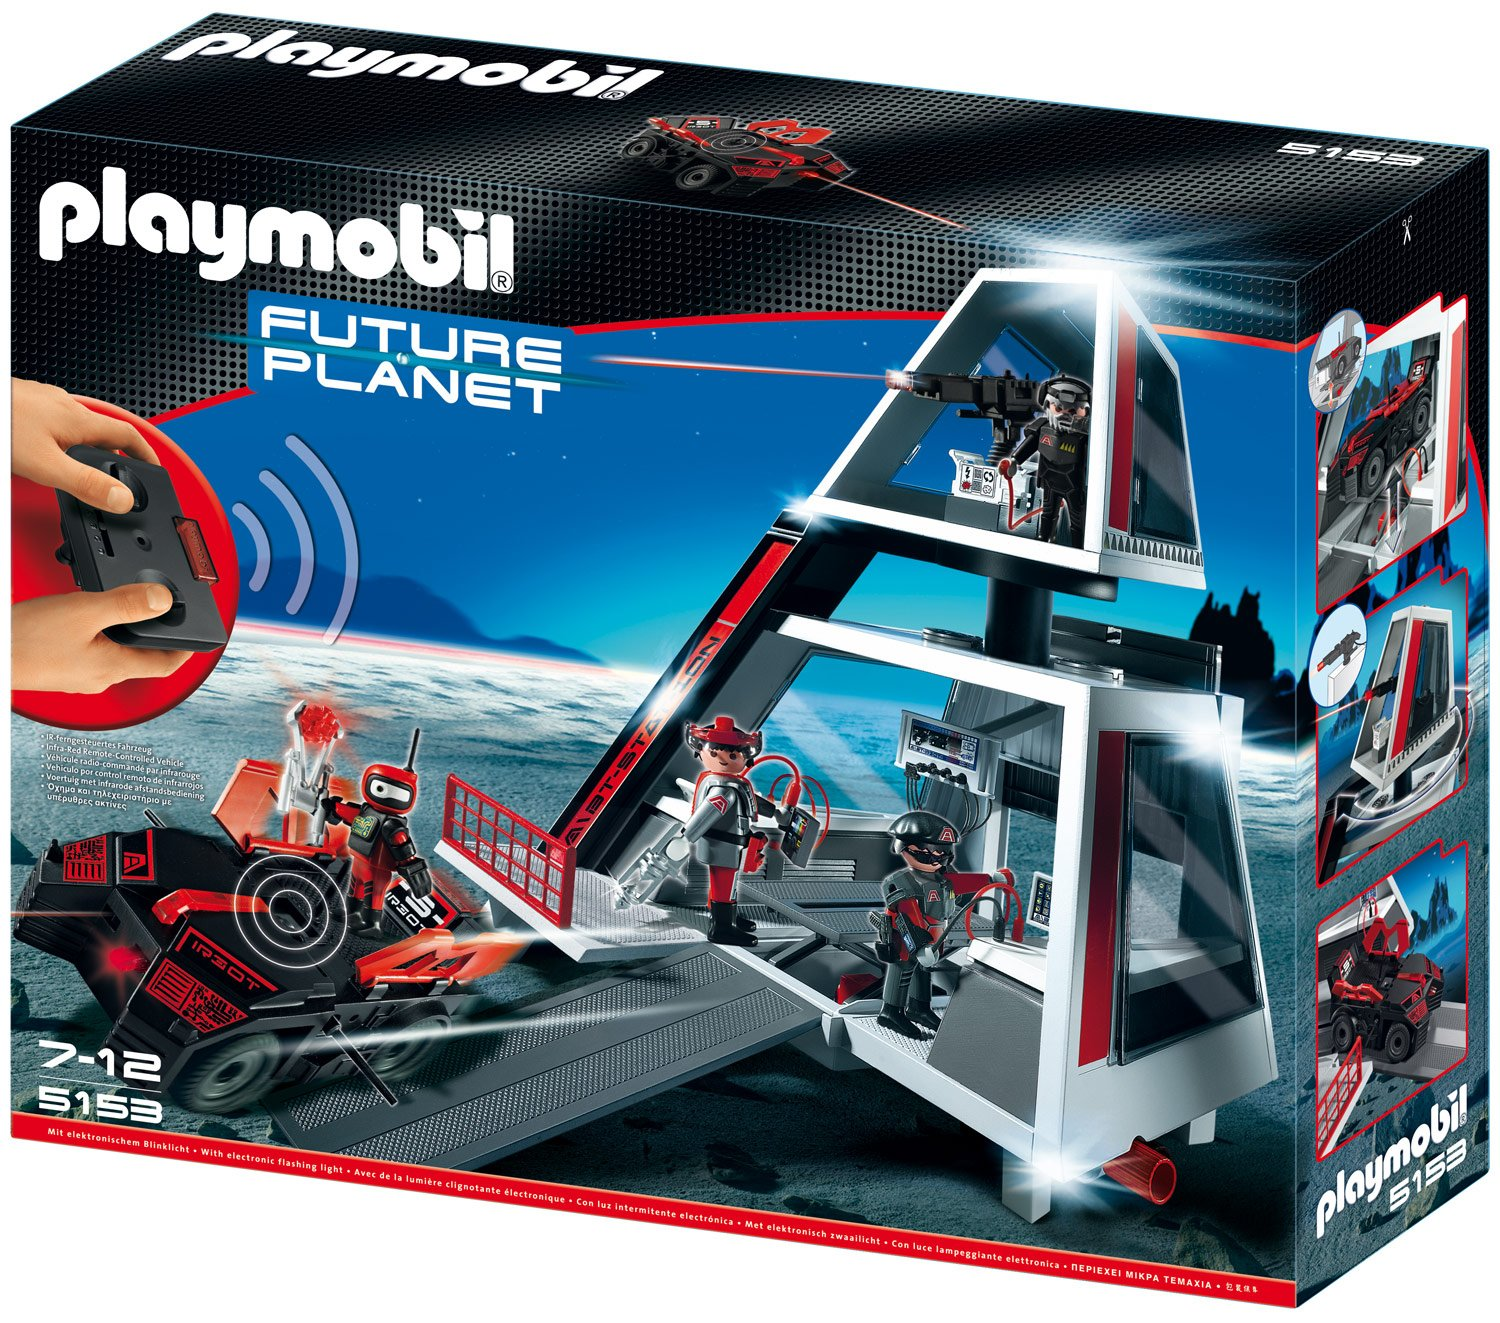 PLAYMOBIL® Darksters Tower Station (5153)